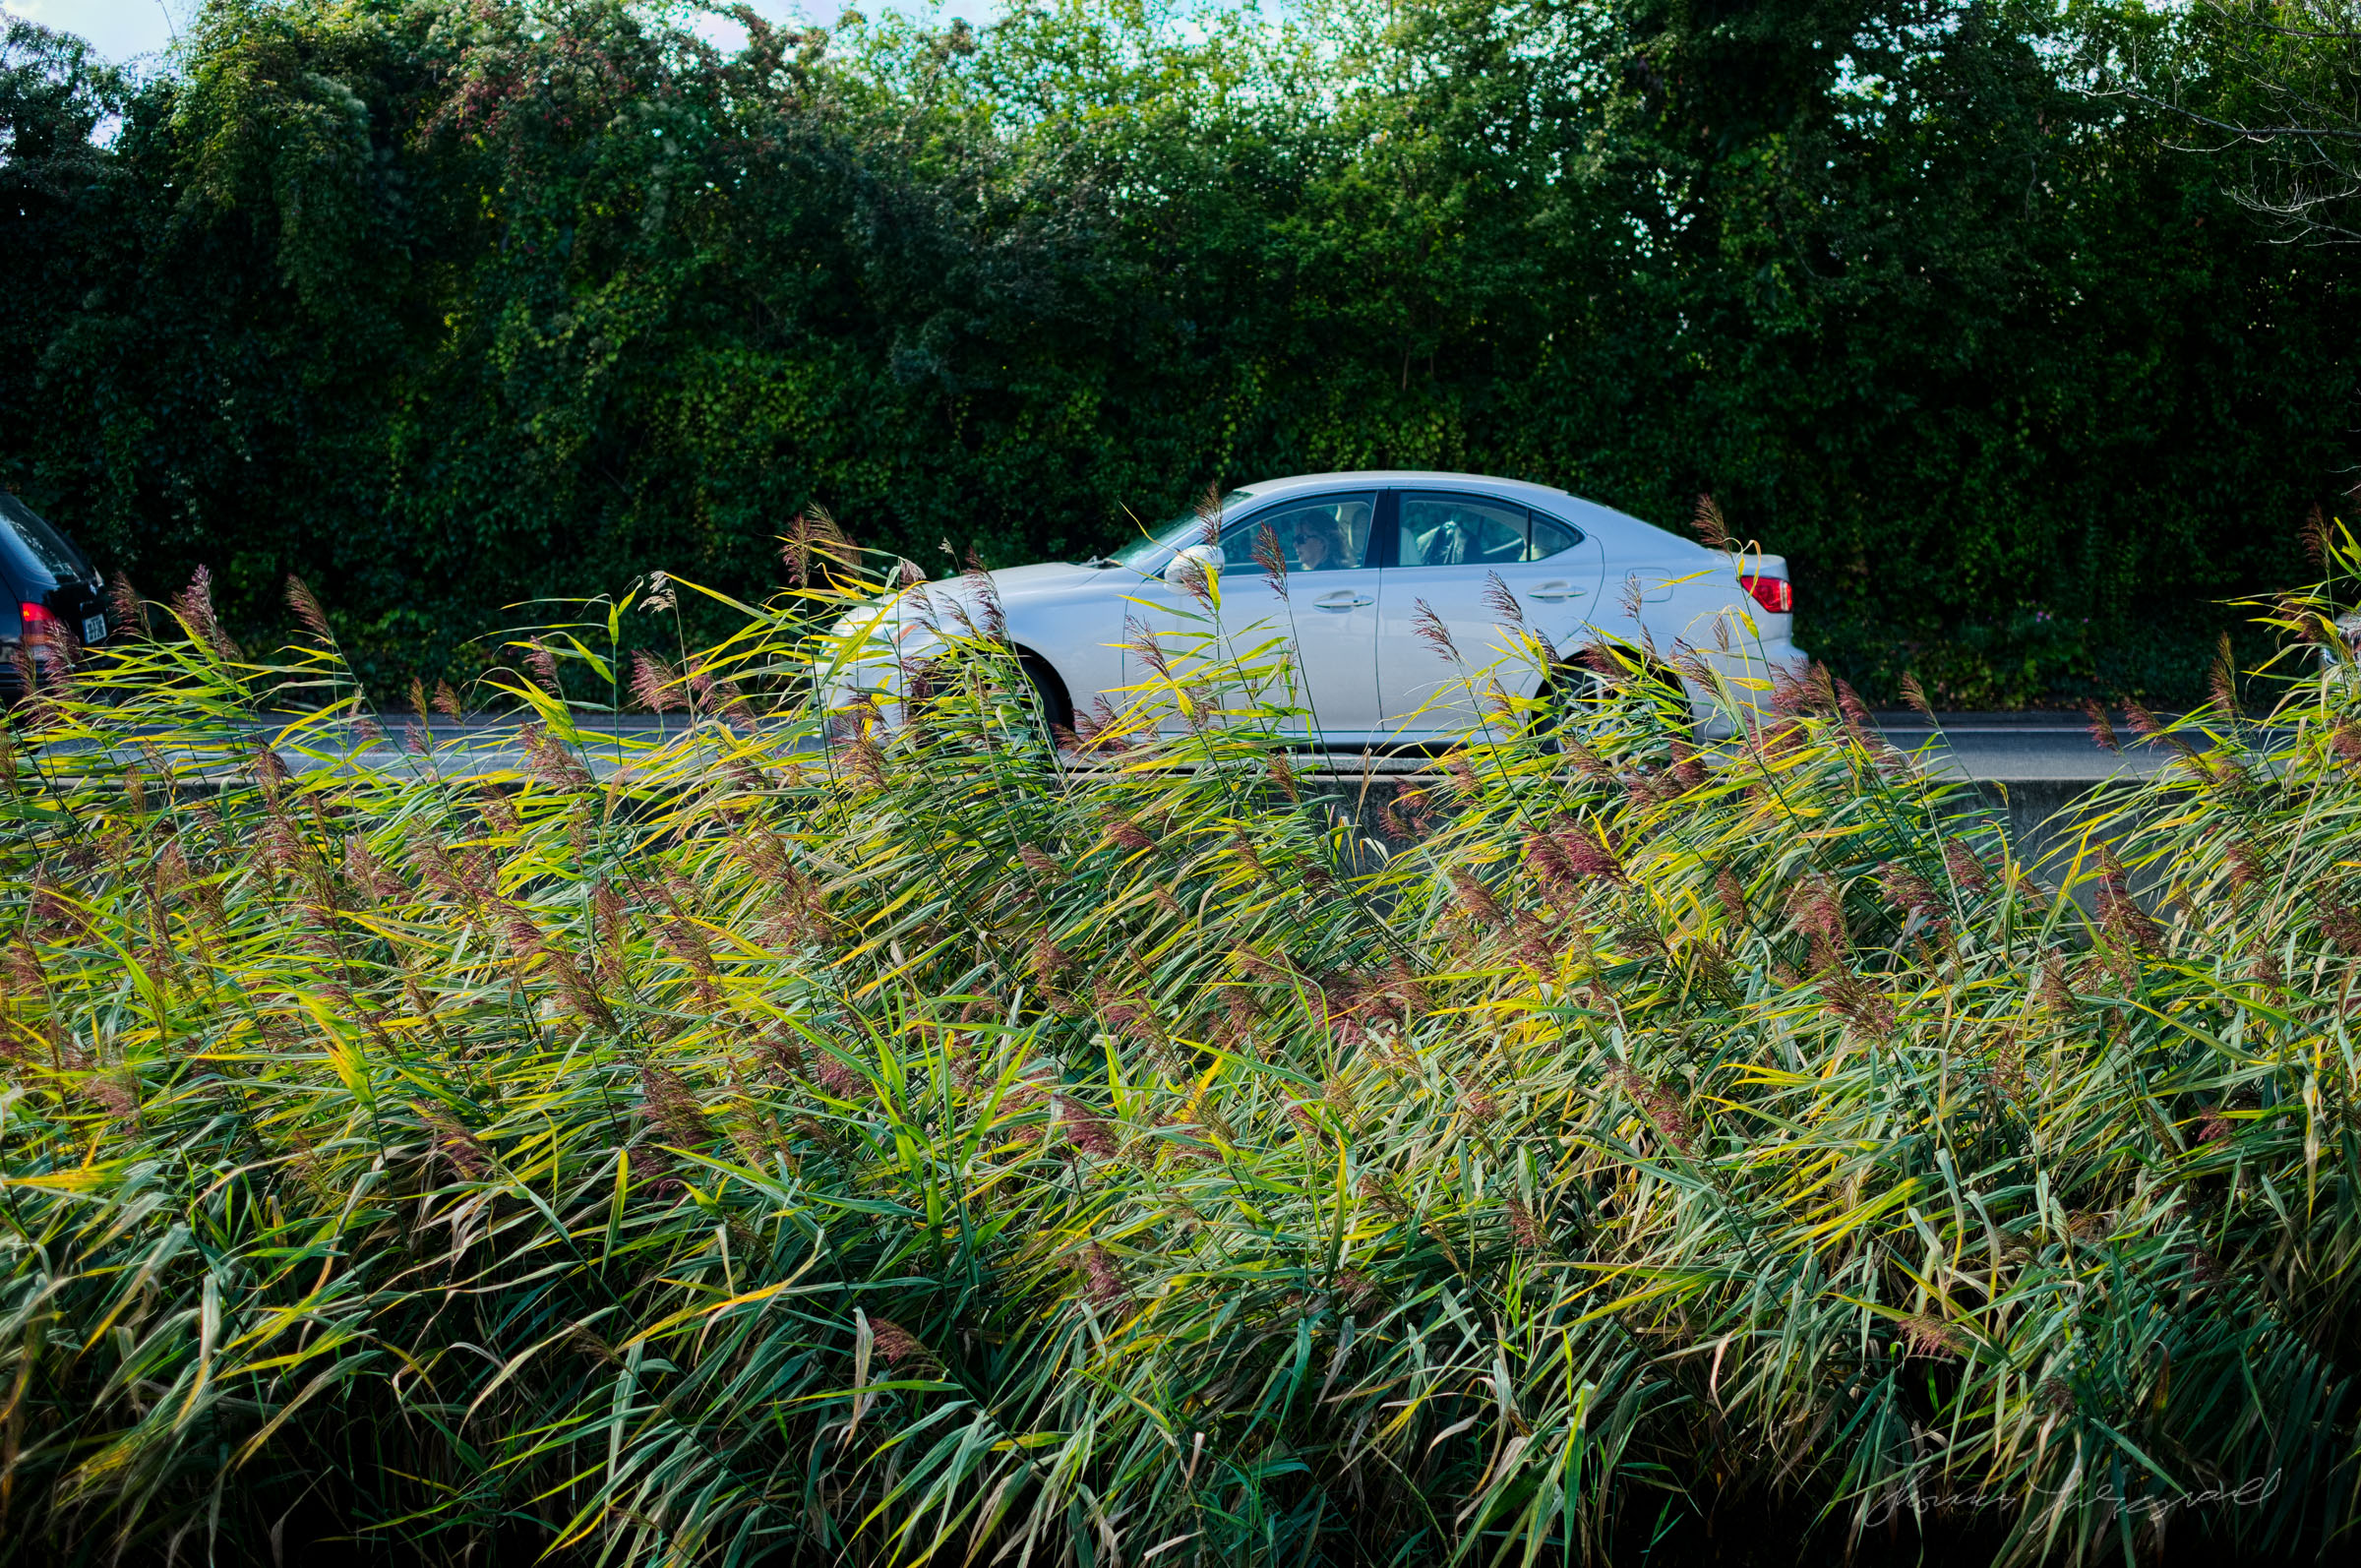 Car through the reeds